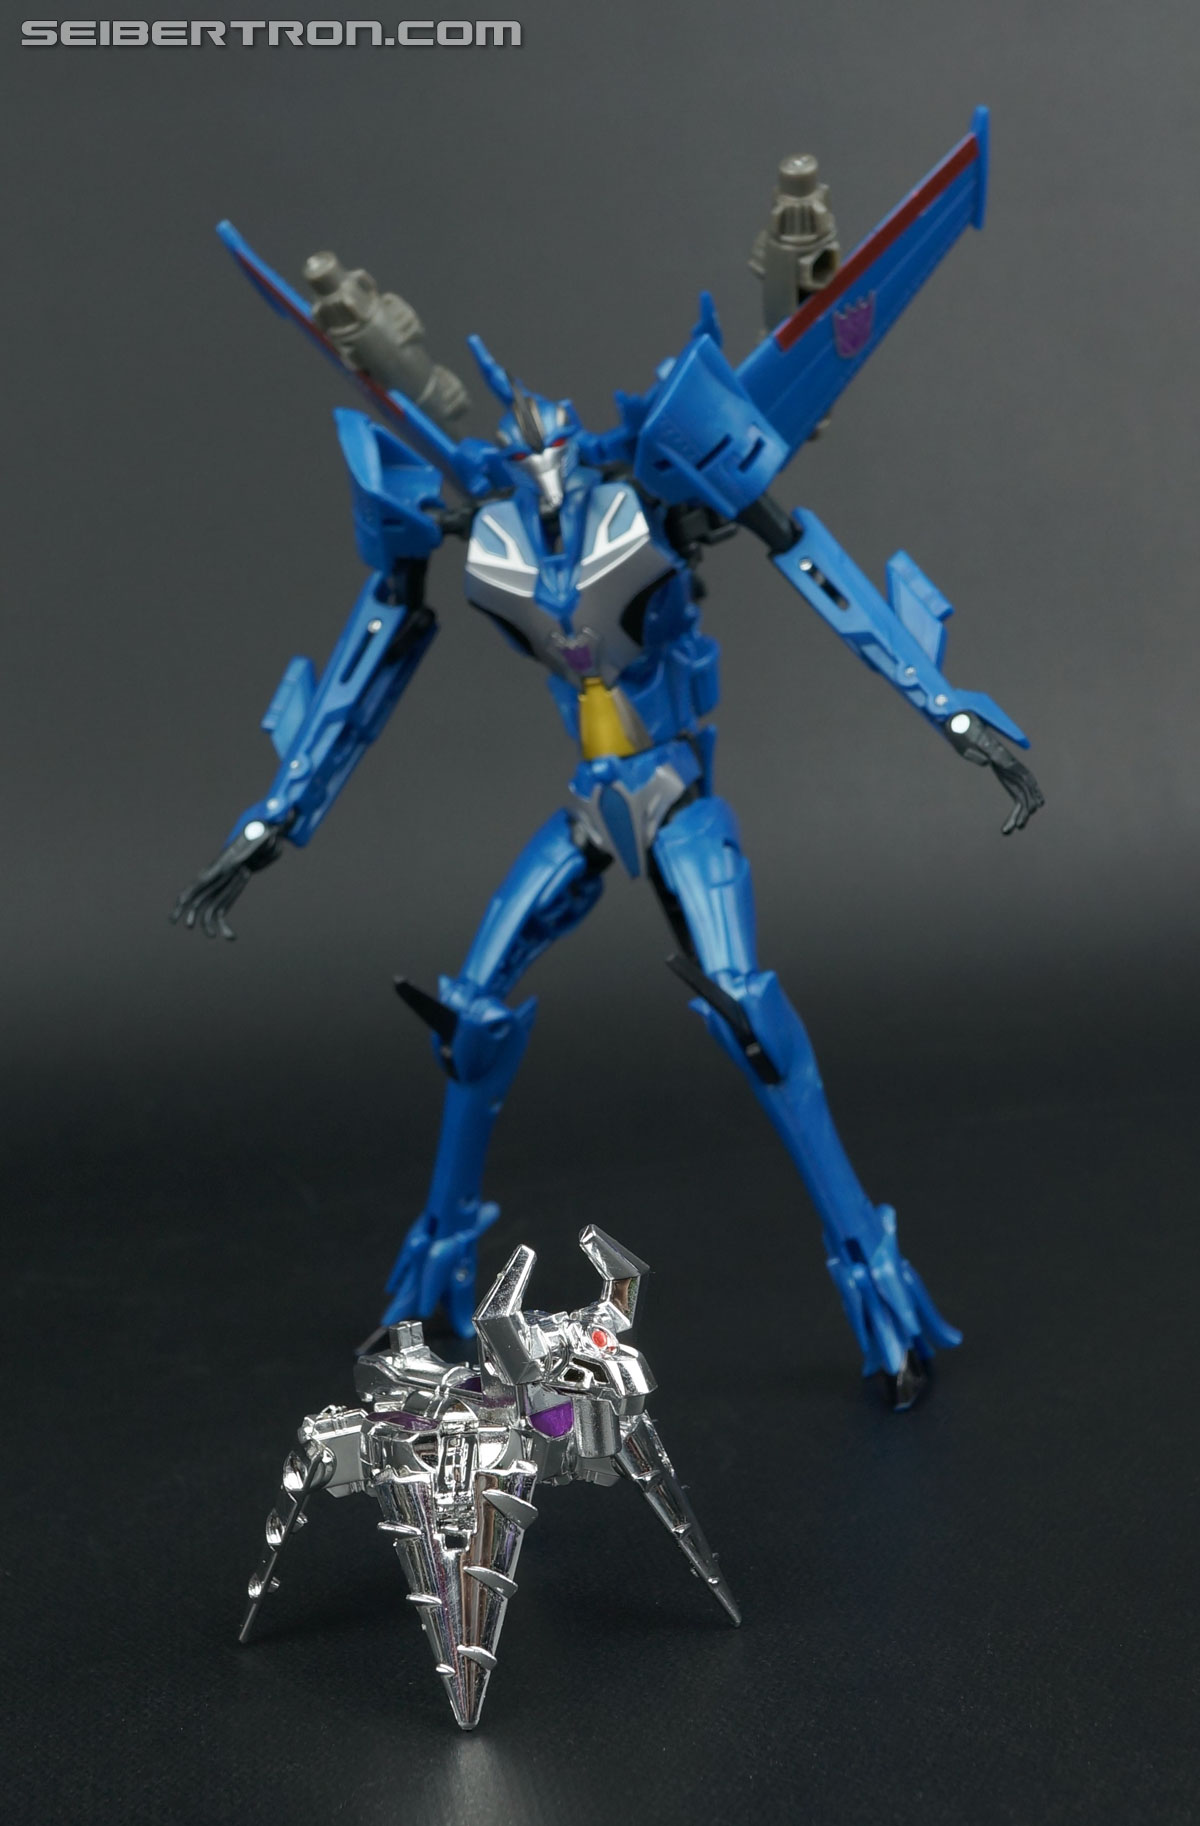 Transformers Arms Micron Silver Metal Balo (Image #78 of 78)